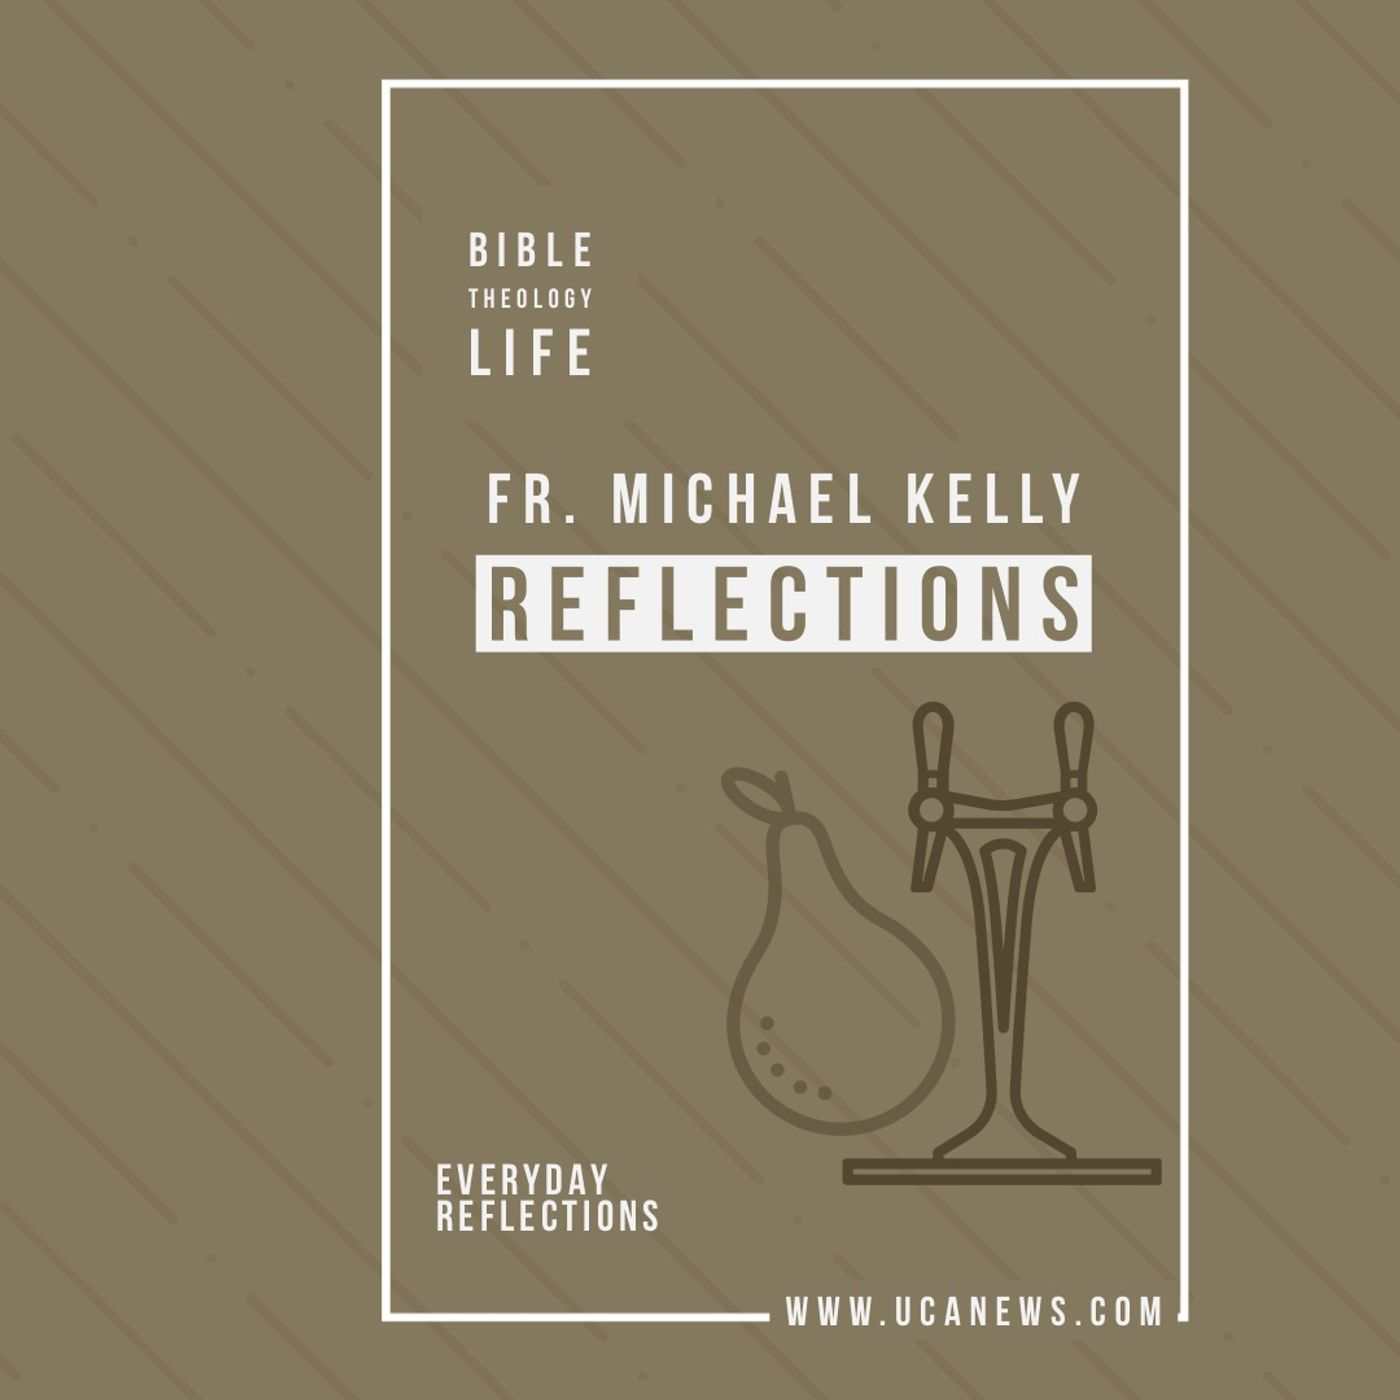 Reflections with Fr. Michael Kelly - Monday 12 Apr, 2021